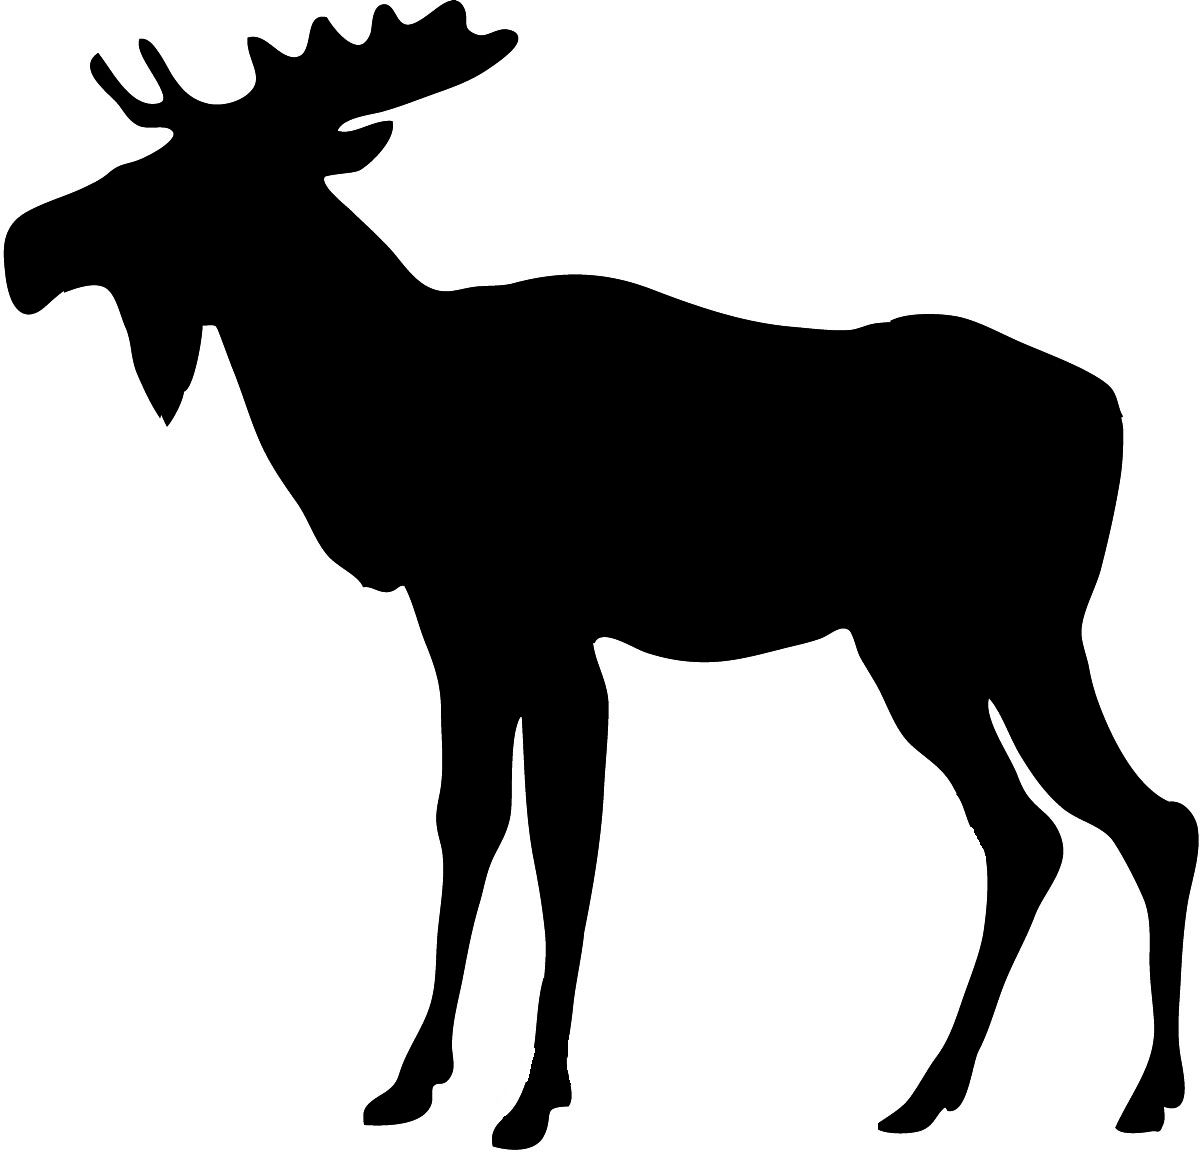 moose head silhouette clip art at getdrawings com free for rh getdrawings com  mouse images clip art